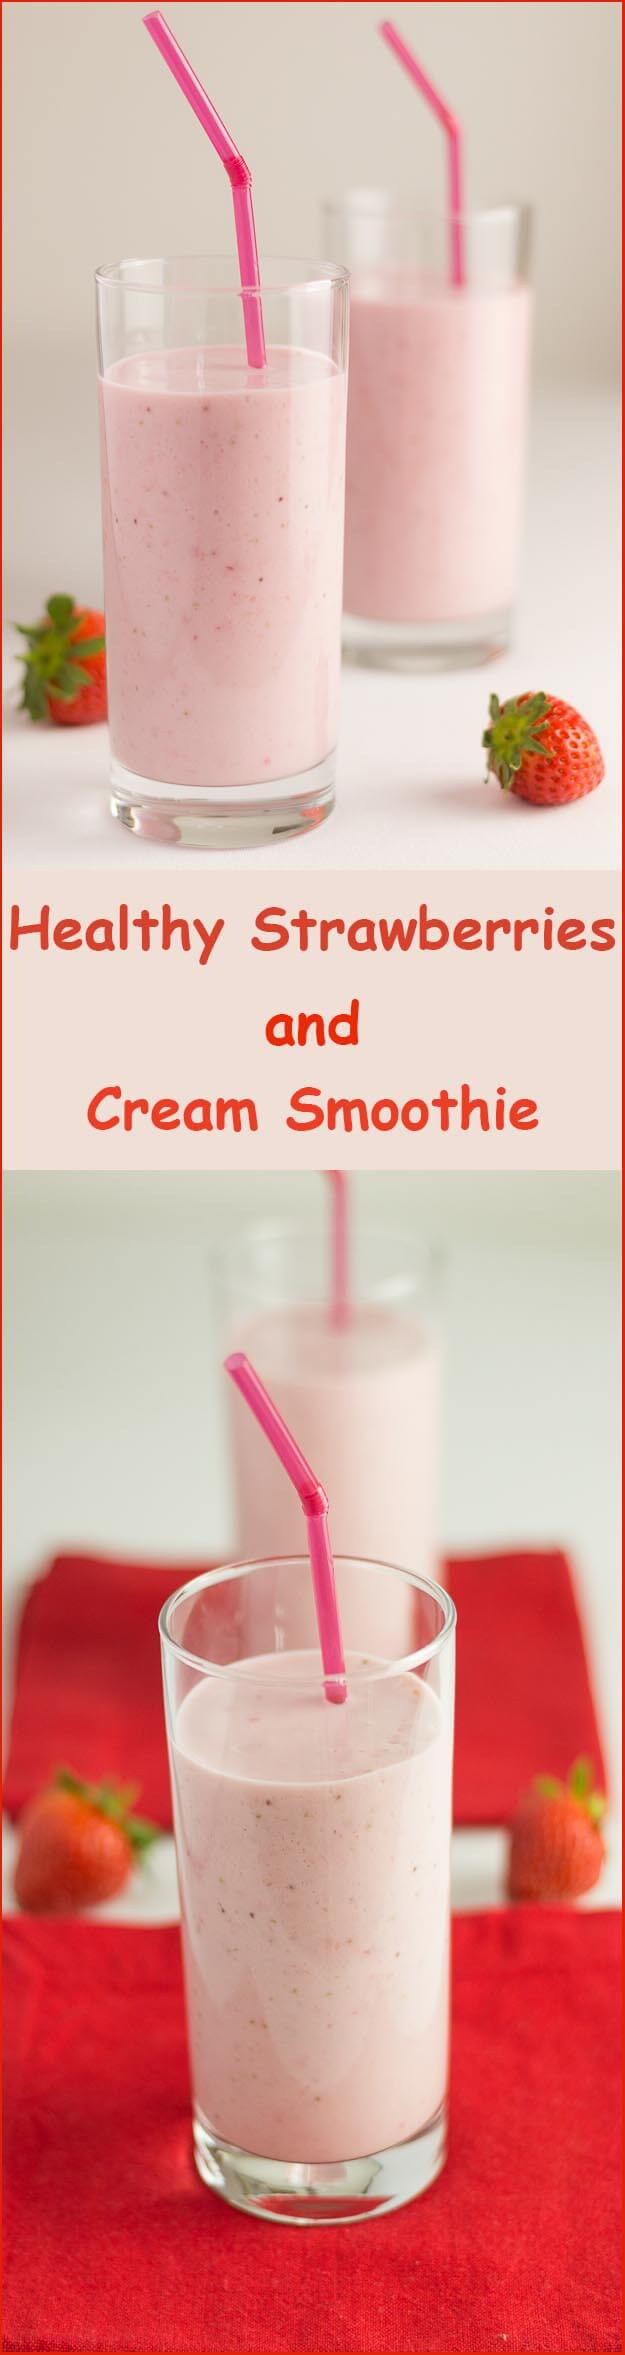 A deliciously creamy, smooth and naturally sweet healthy strawberries and cream smoothie. Made with no actual cream!